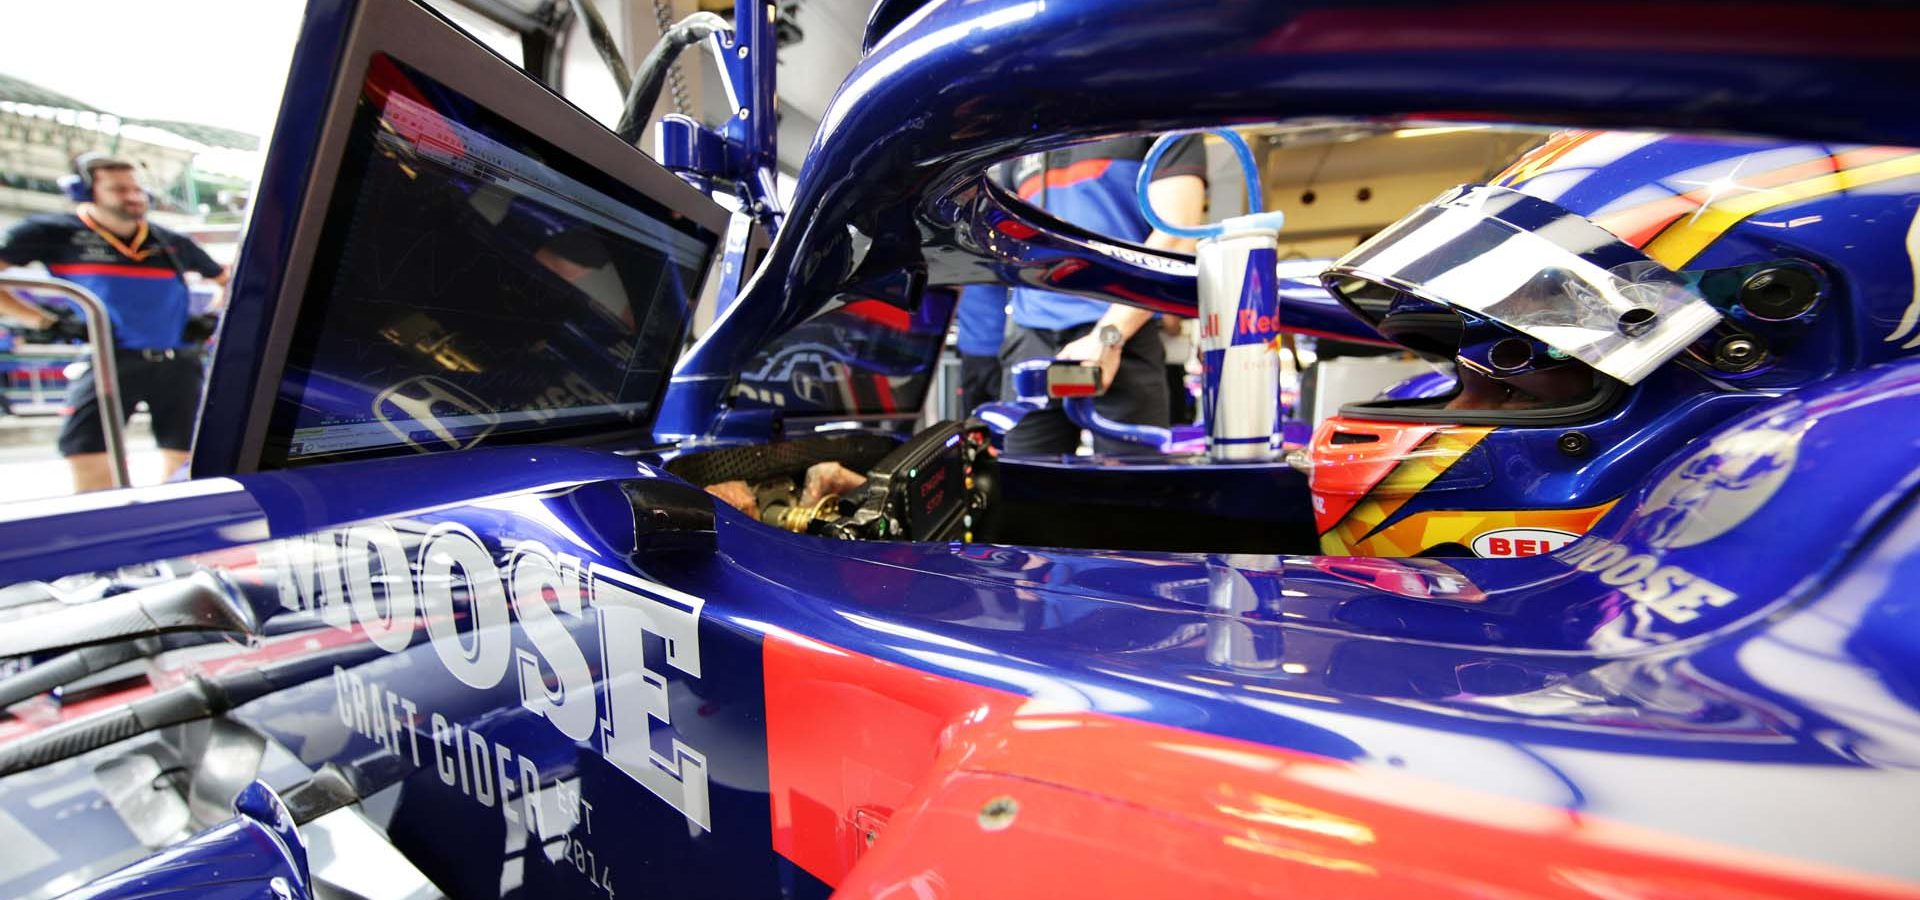 BUDAPEST, HUNGARY - AUGUST 02: Alexander Albon of Thailand and Scuderia Toro Rosso prepares to drive in the garage during practice for the F1 Grand Prix of Hungary at Hungaroring on August 02, 2019 in Budapest, Hungary. (Photo by Peter Fox/Getty Images) // Getty Images / Red Bull Content Pool  // AP-214UE91PD2111 // Usage for editorial use only // Please go to www.redbullcontentpool.com for further information. //